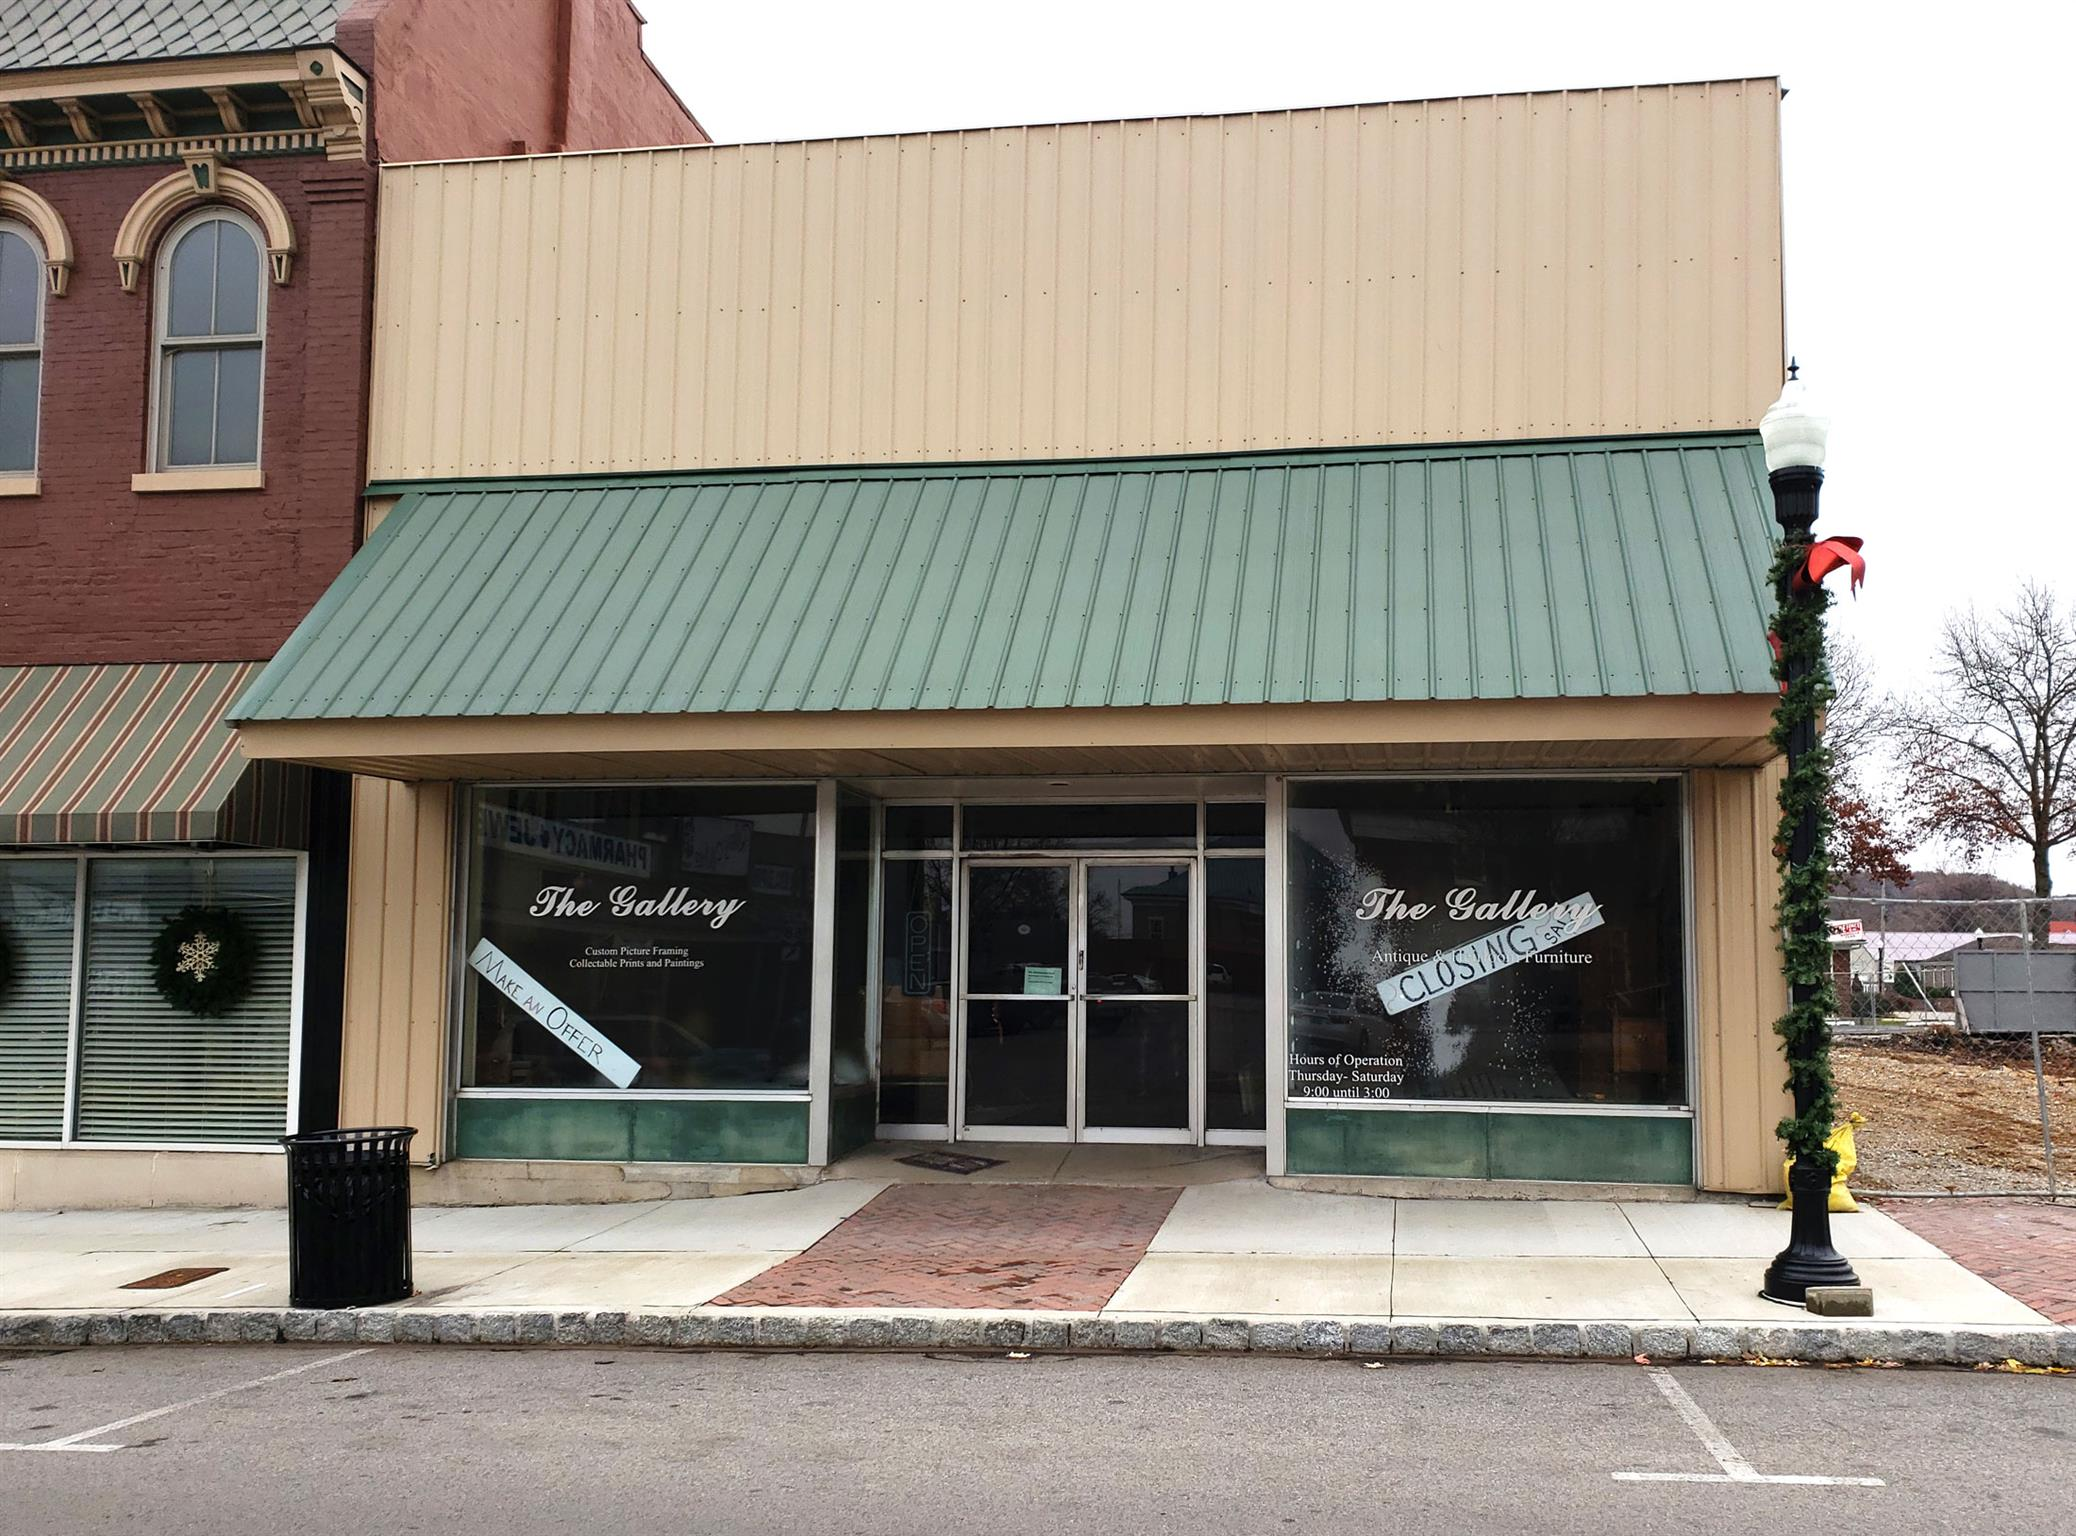 PROPERTY HAS 4000 SQ. FT. ON MAIN FLOOR AND 3000 SQ FT IN BASEMENT/GREAT OPPORTUNITY FOR A RETAIL SHOP, RESTAURANT, OFFICE OR OTHER BUSINESS/PROPERTY IS IN A GREAT LOCATION NEXT TO THE NEW HOTEL UNDER CONSTRUCTION/SELLING AS-IS, WHERE-IS